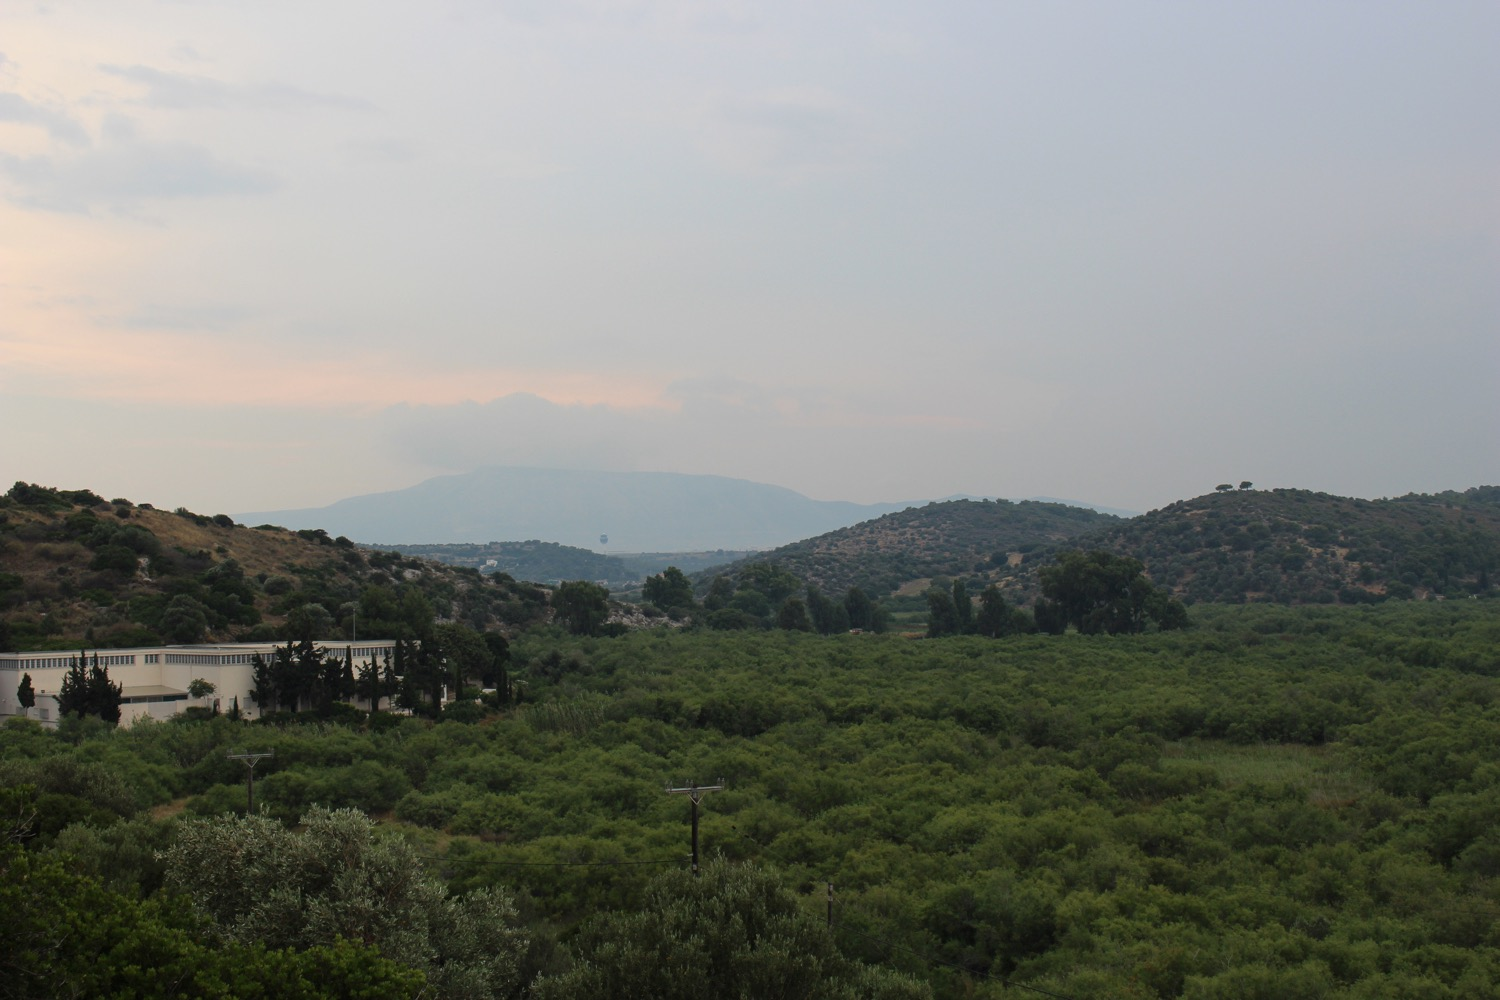 The valley of Artemis' temple in Brauron, with the museum tucked against the hill